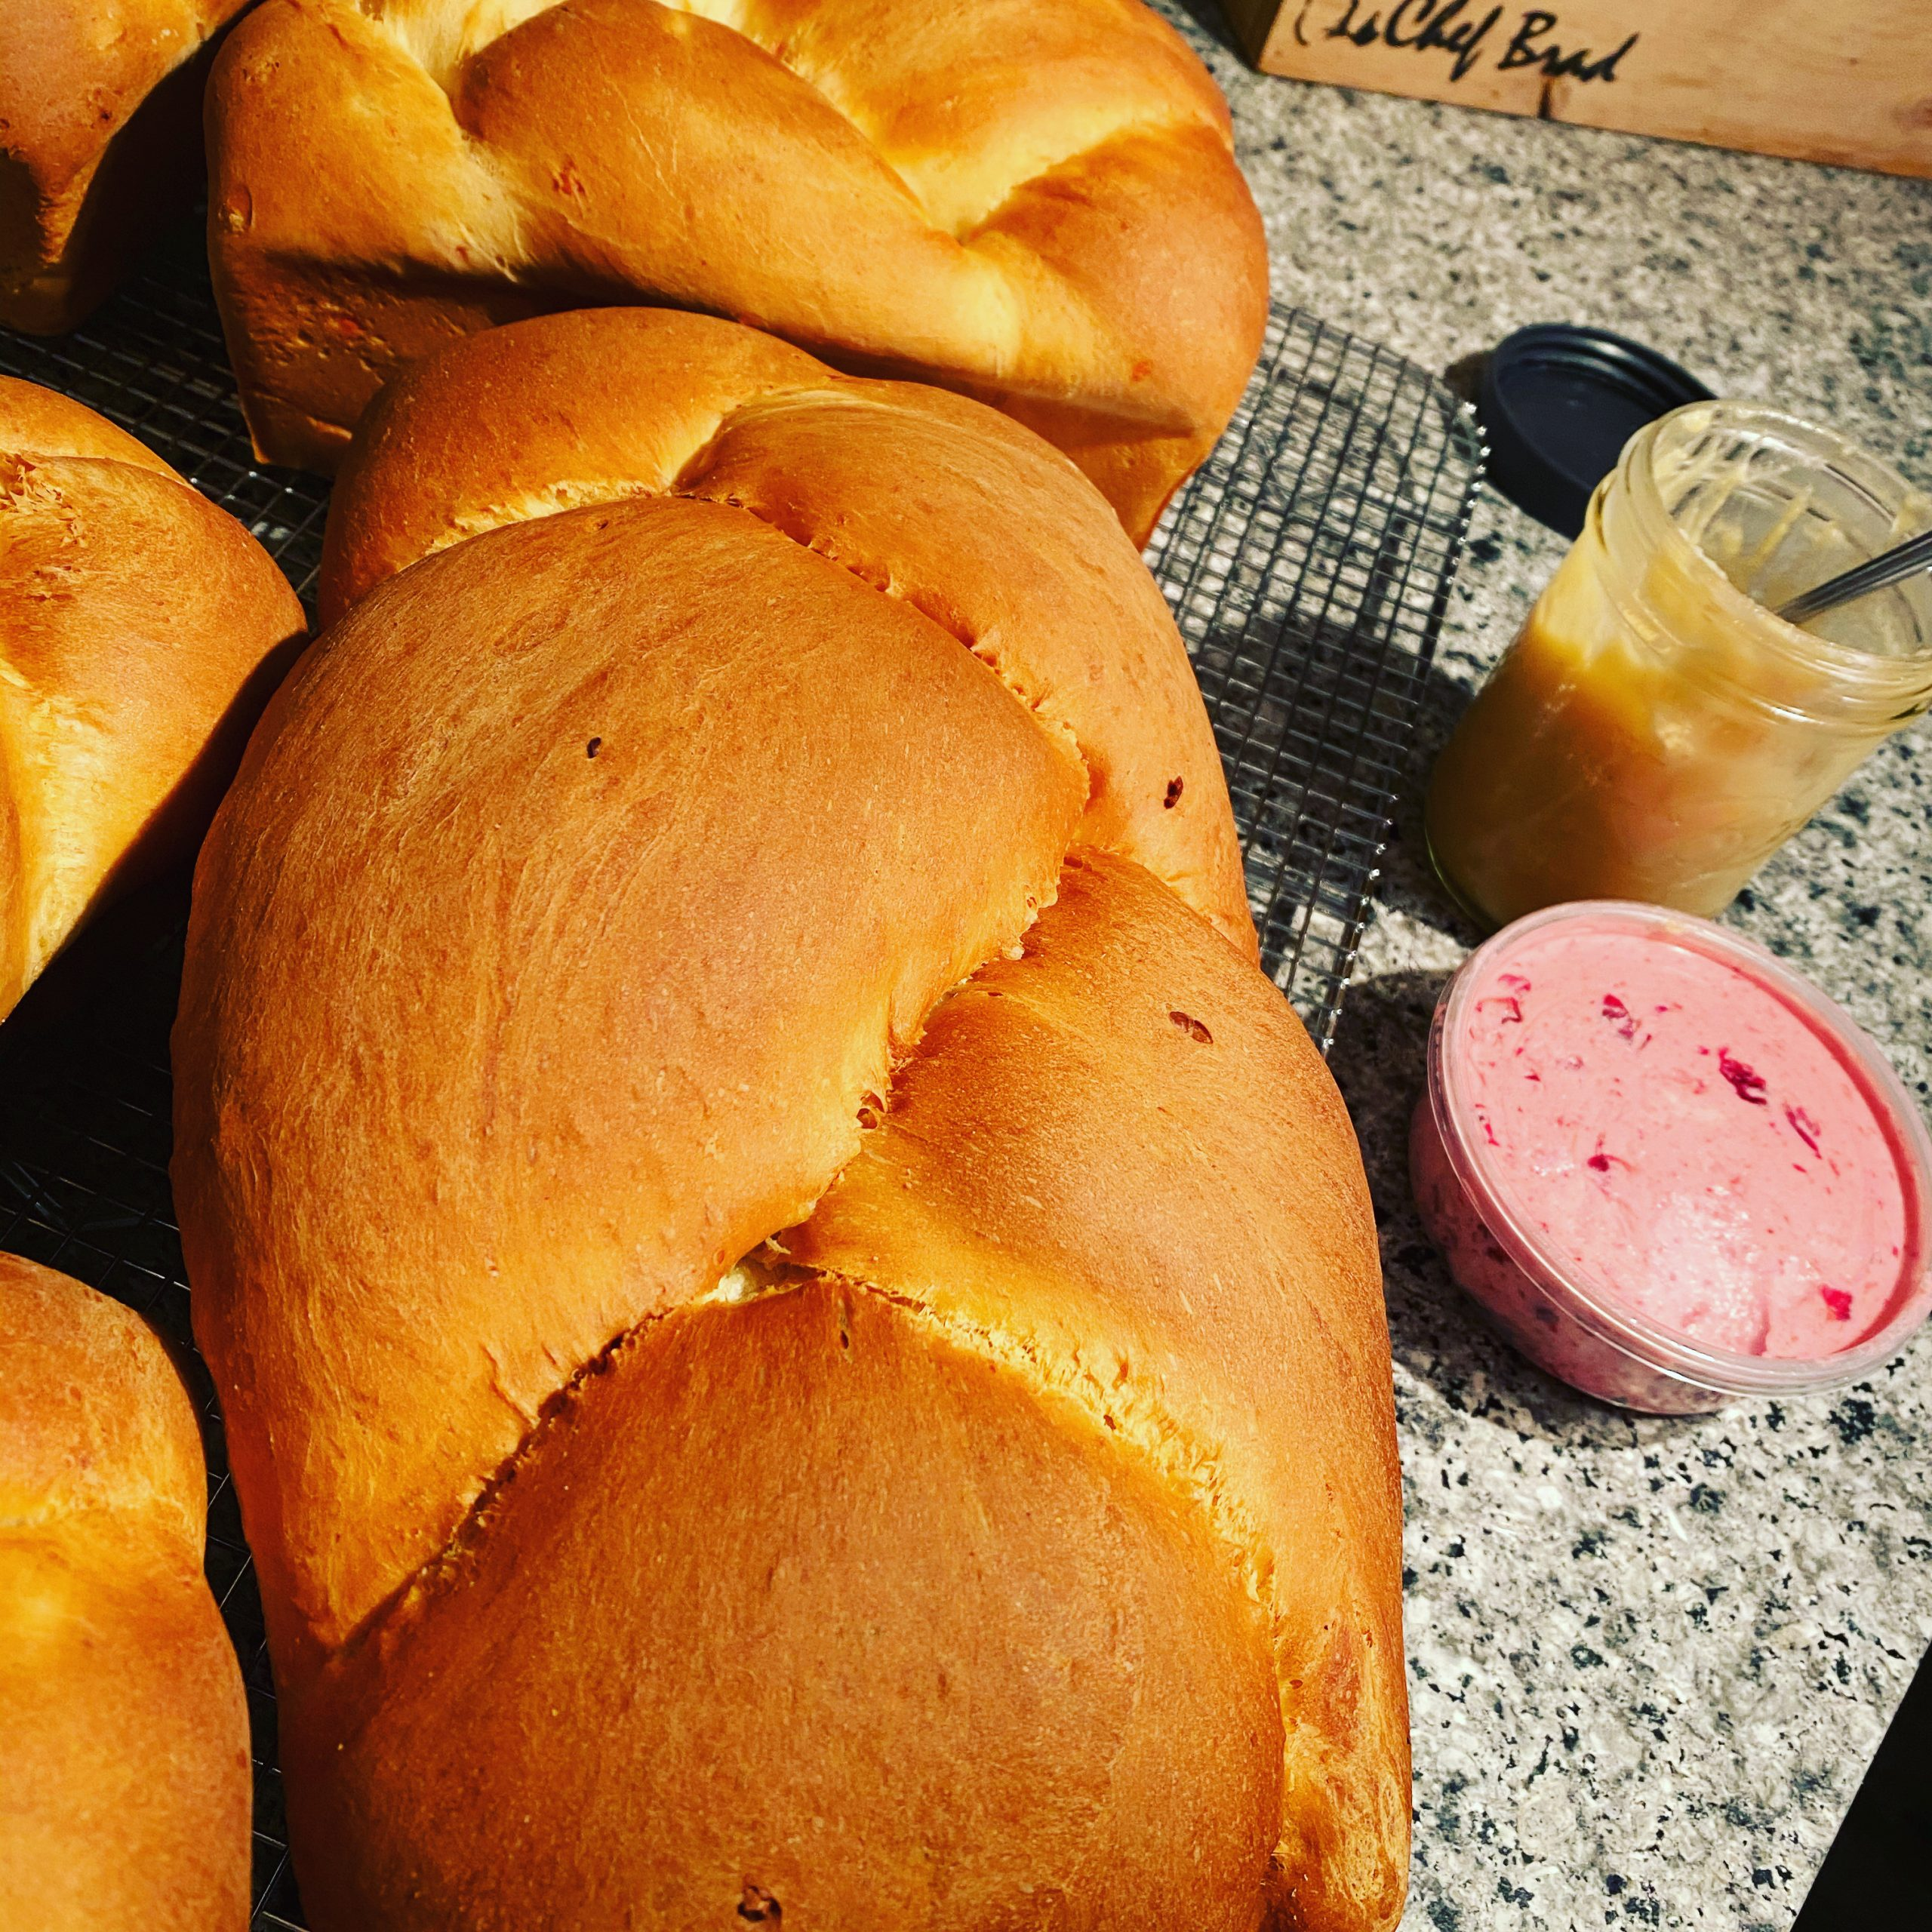 Breads and Spreads